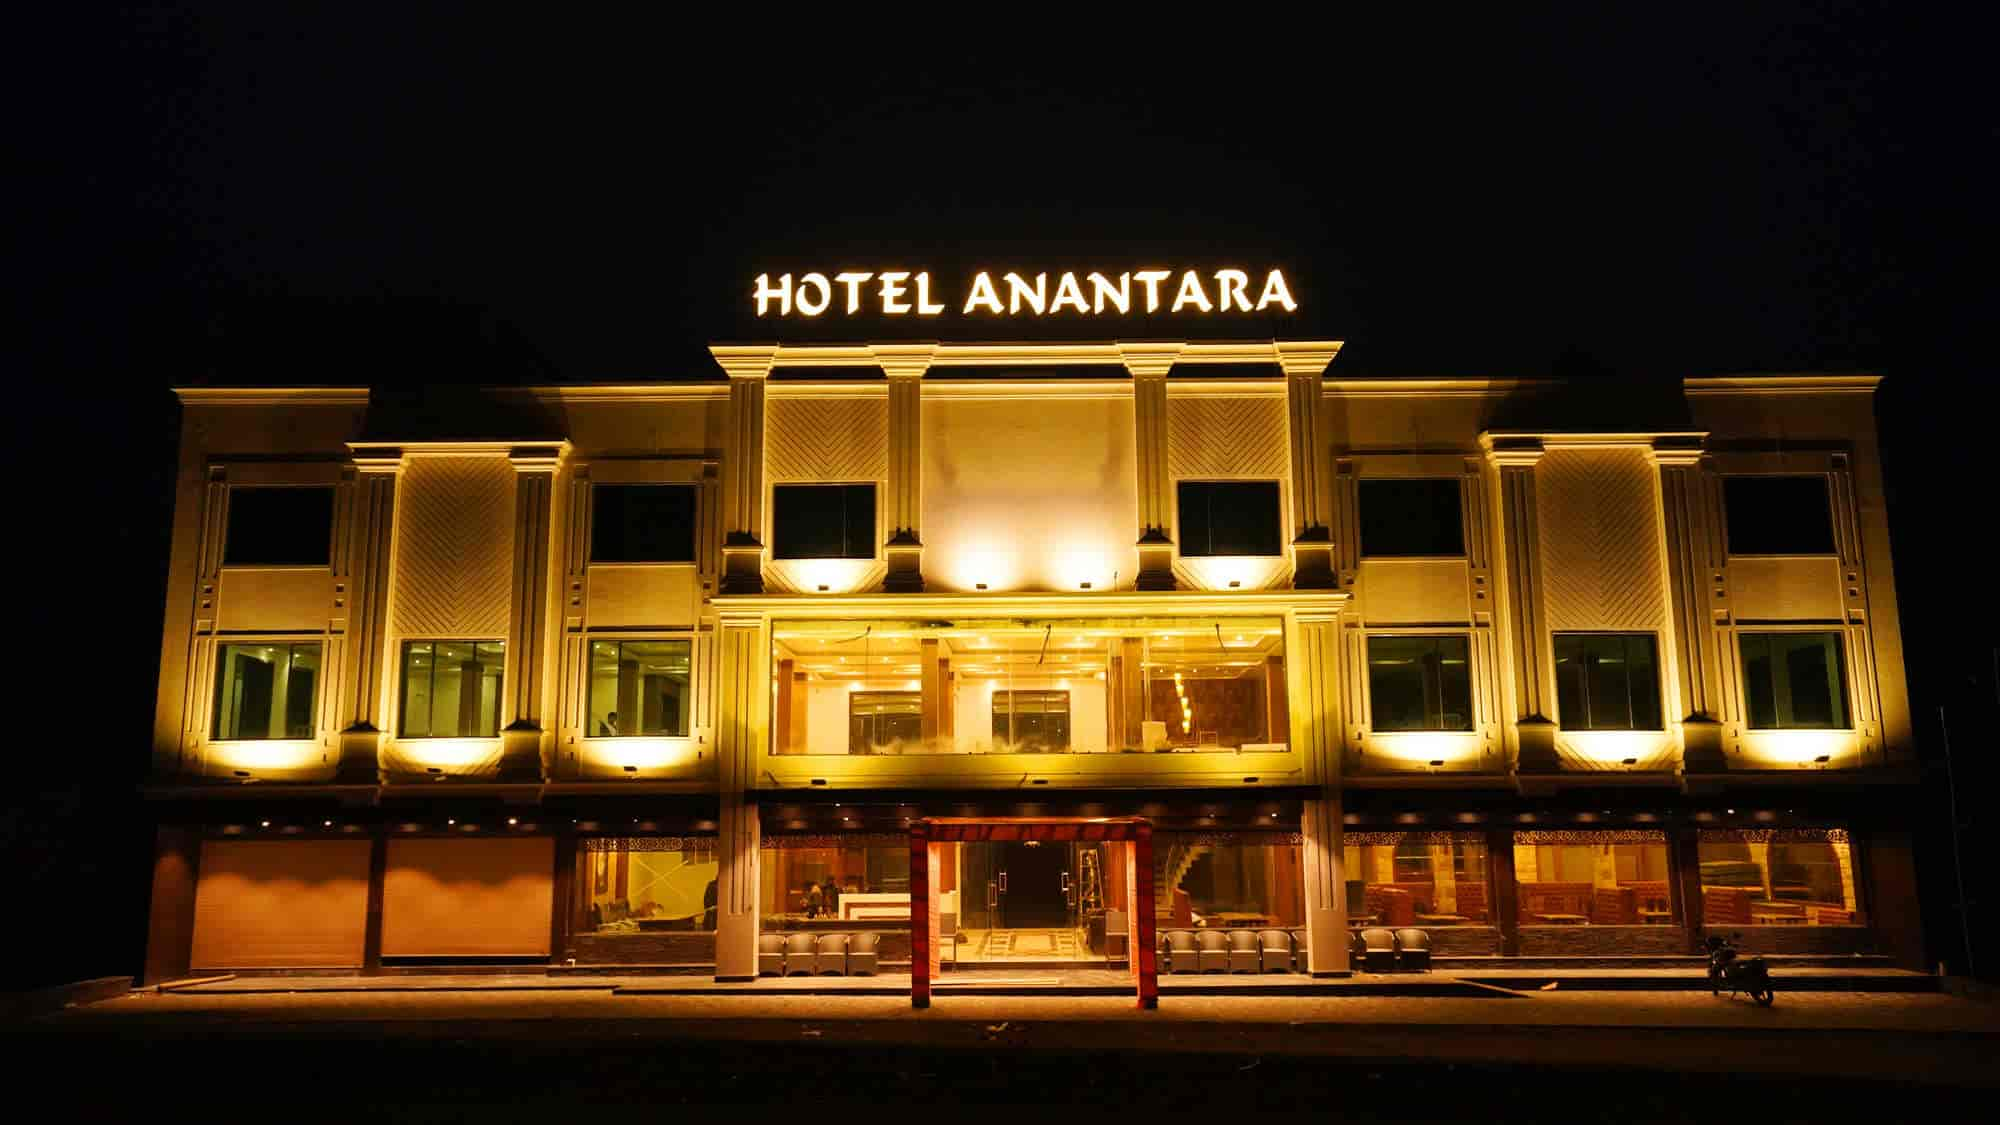 - Hotel Anantara Images, Bazargaon, Nagpur - Lodging Services